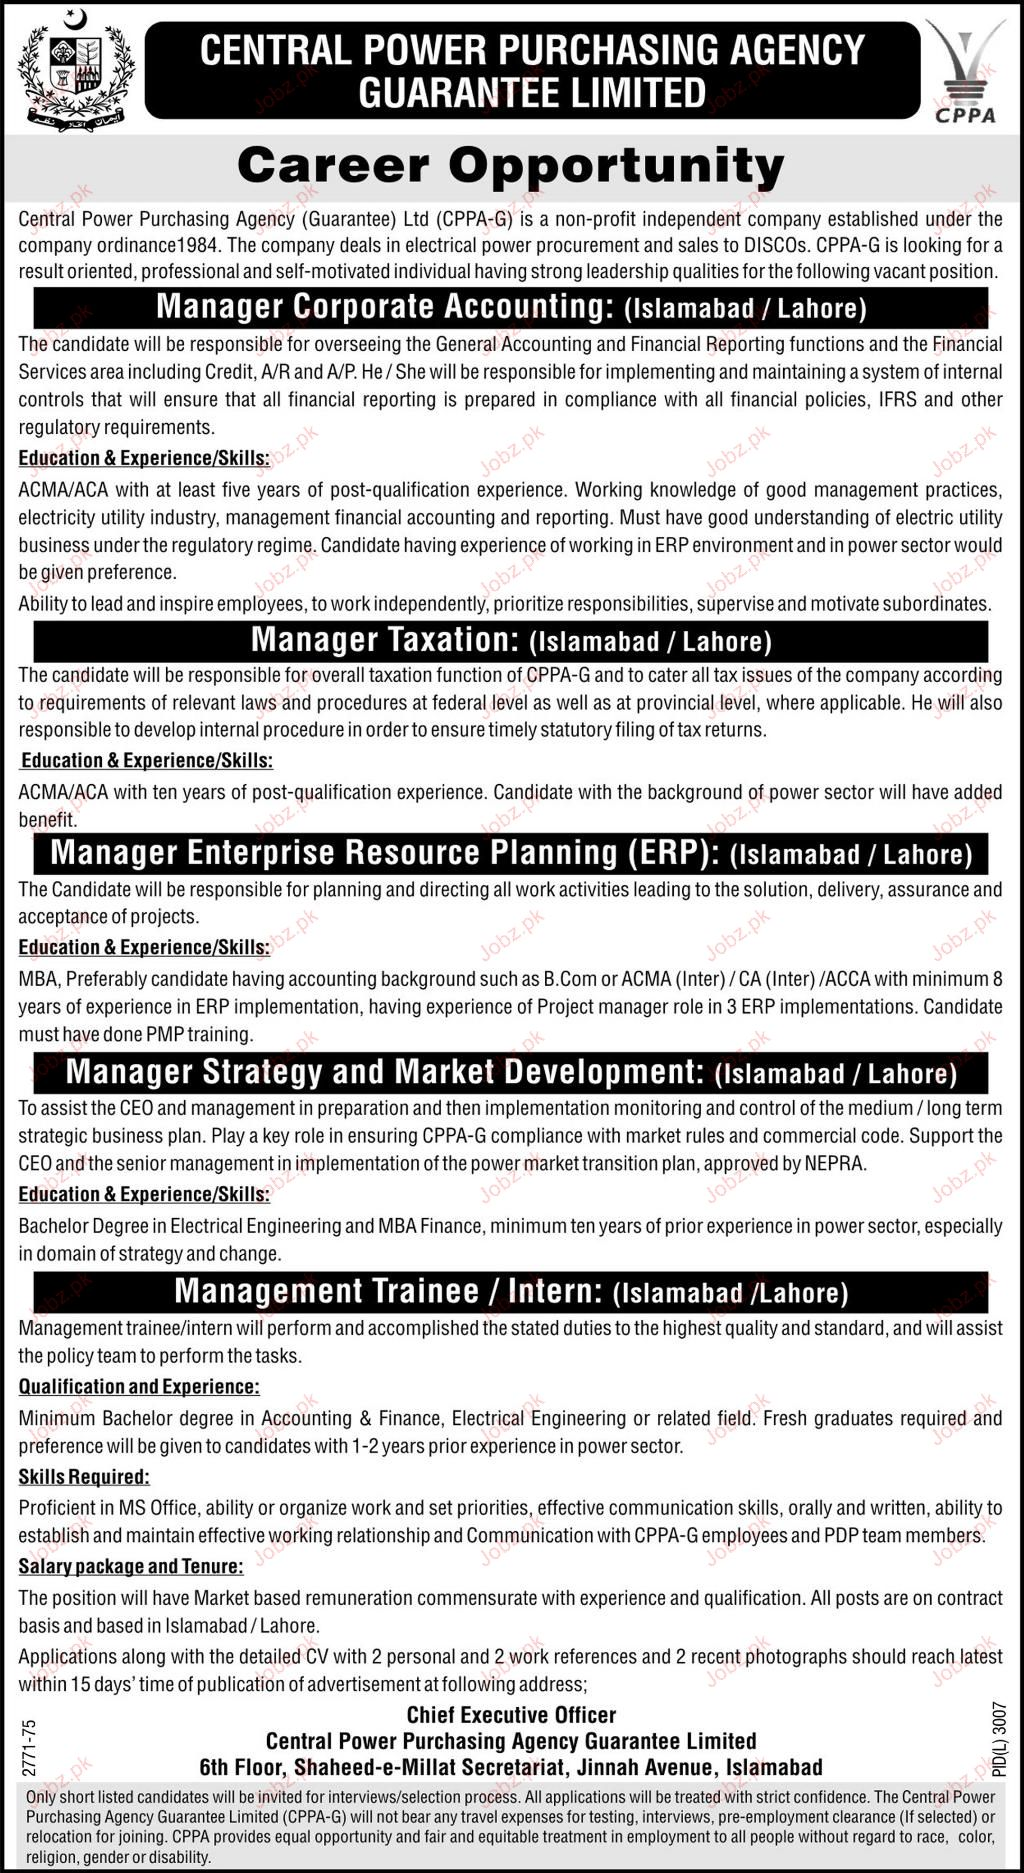 Manager Corporate, Manager Taxation Wanted